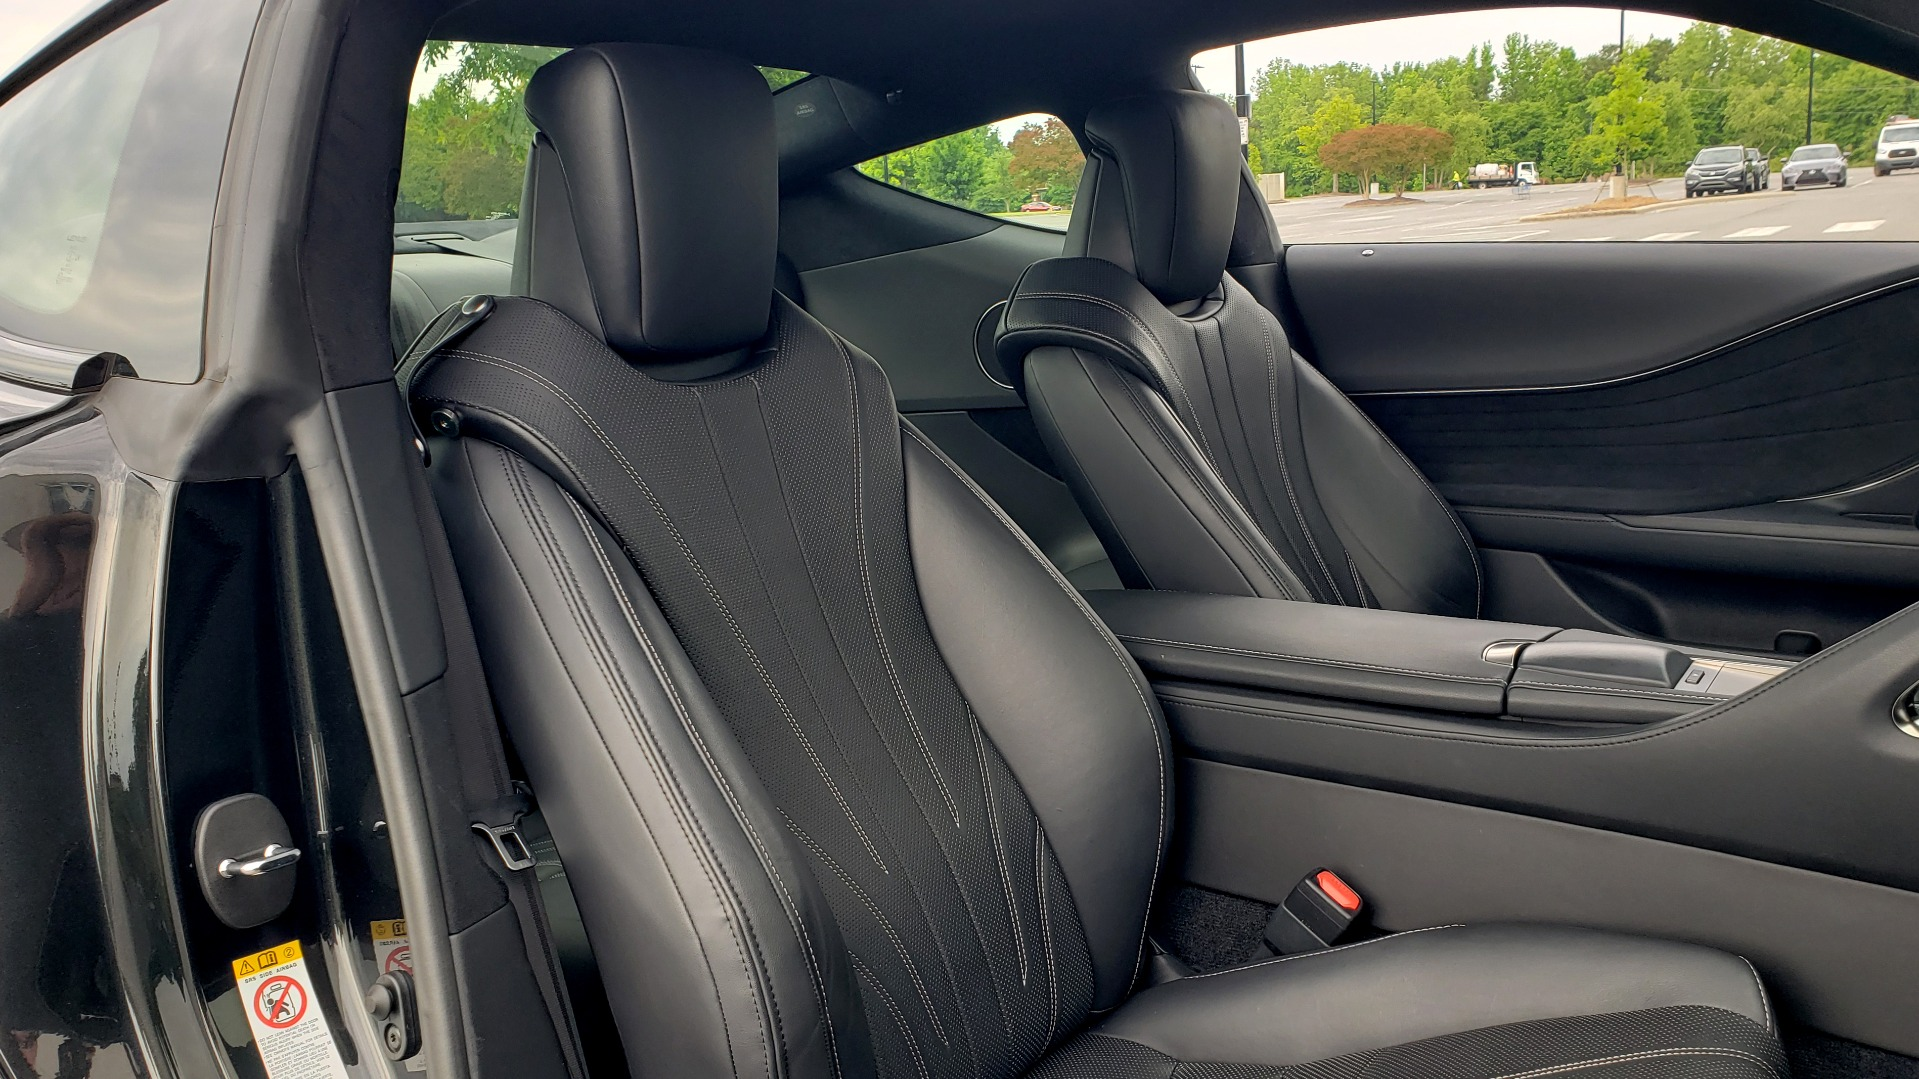 Used 2018 Lexus LC 500 COUPE / 5.0L V8 (471HP) / 10-SPD AUTO / HUD / SUNROOF / REARVIEW for sale Sold at Formula Imports in Charlotte NC 28227 57